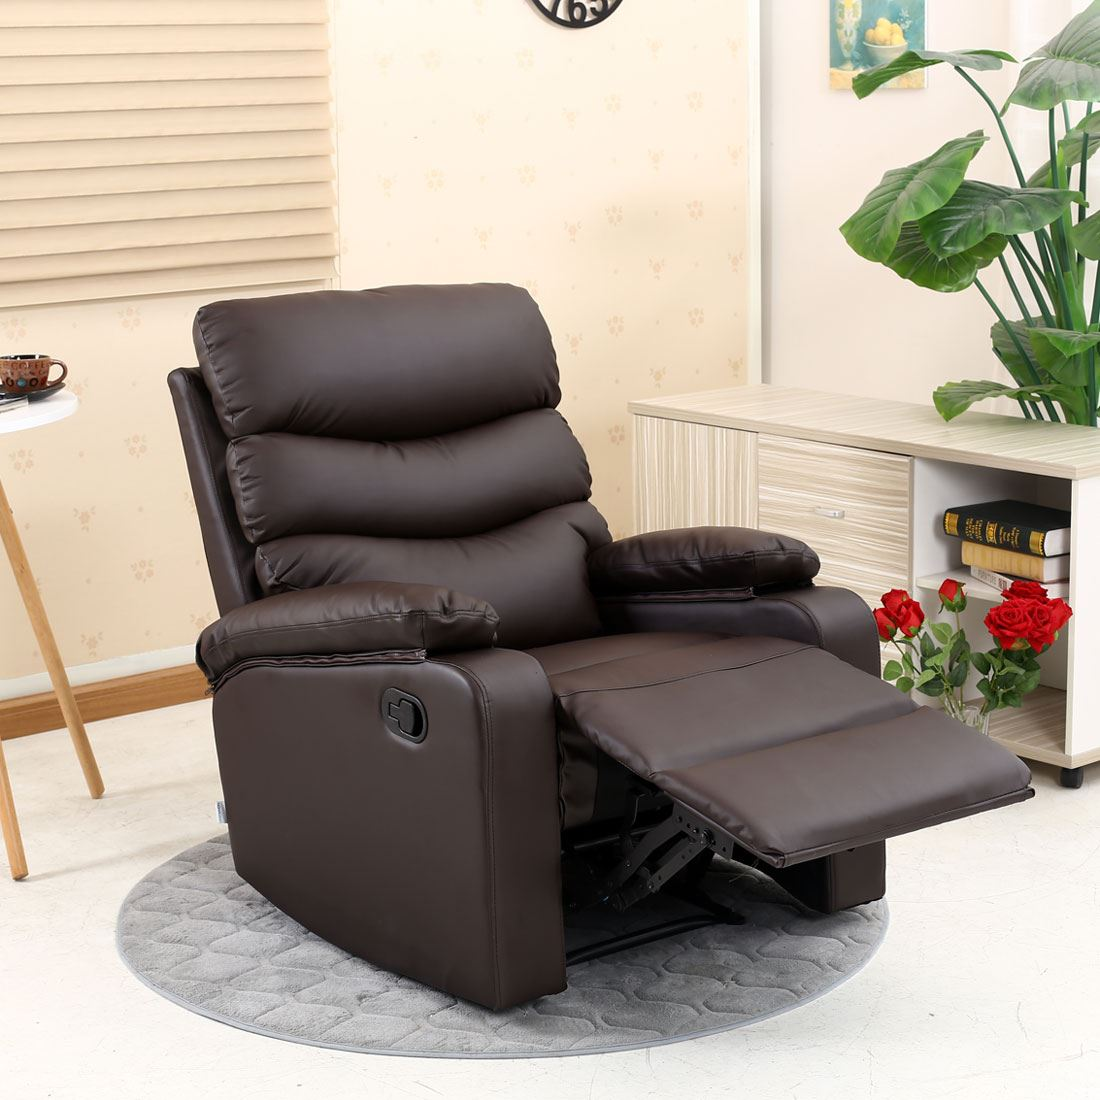 ASHBY-LEATHER-RECLINER-ARMCHAIR-SOFA-HOME-LOUNGE-CHAIR-RECLINING